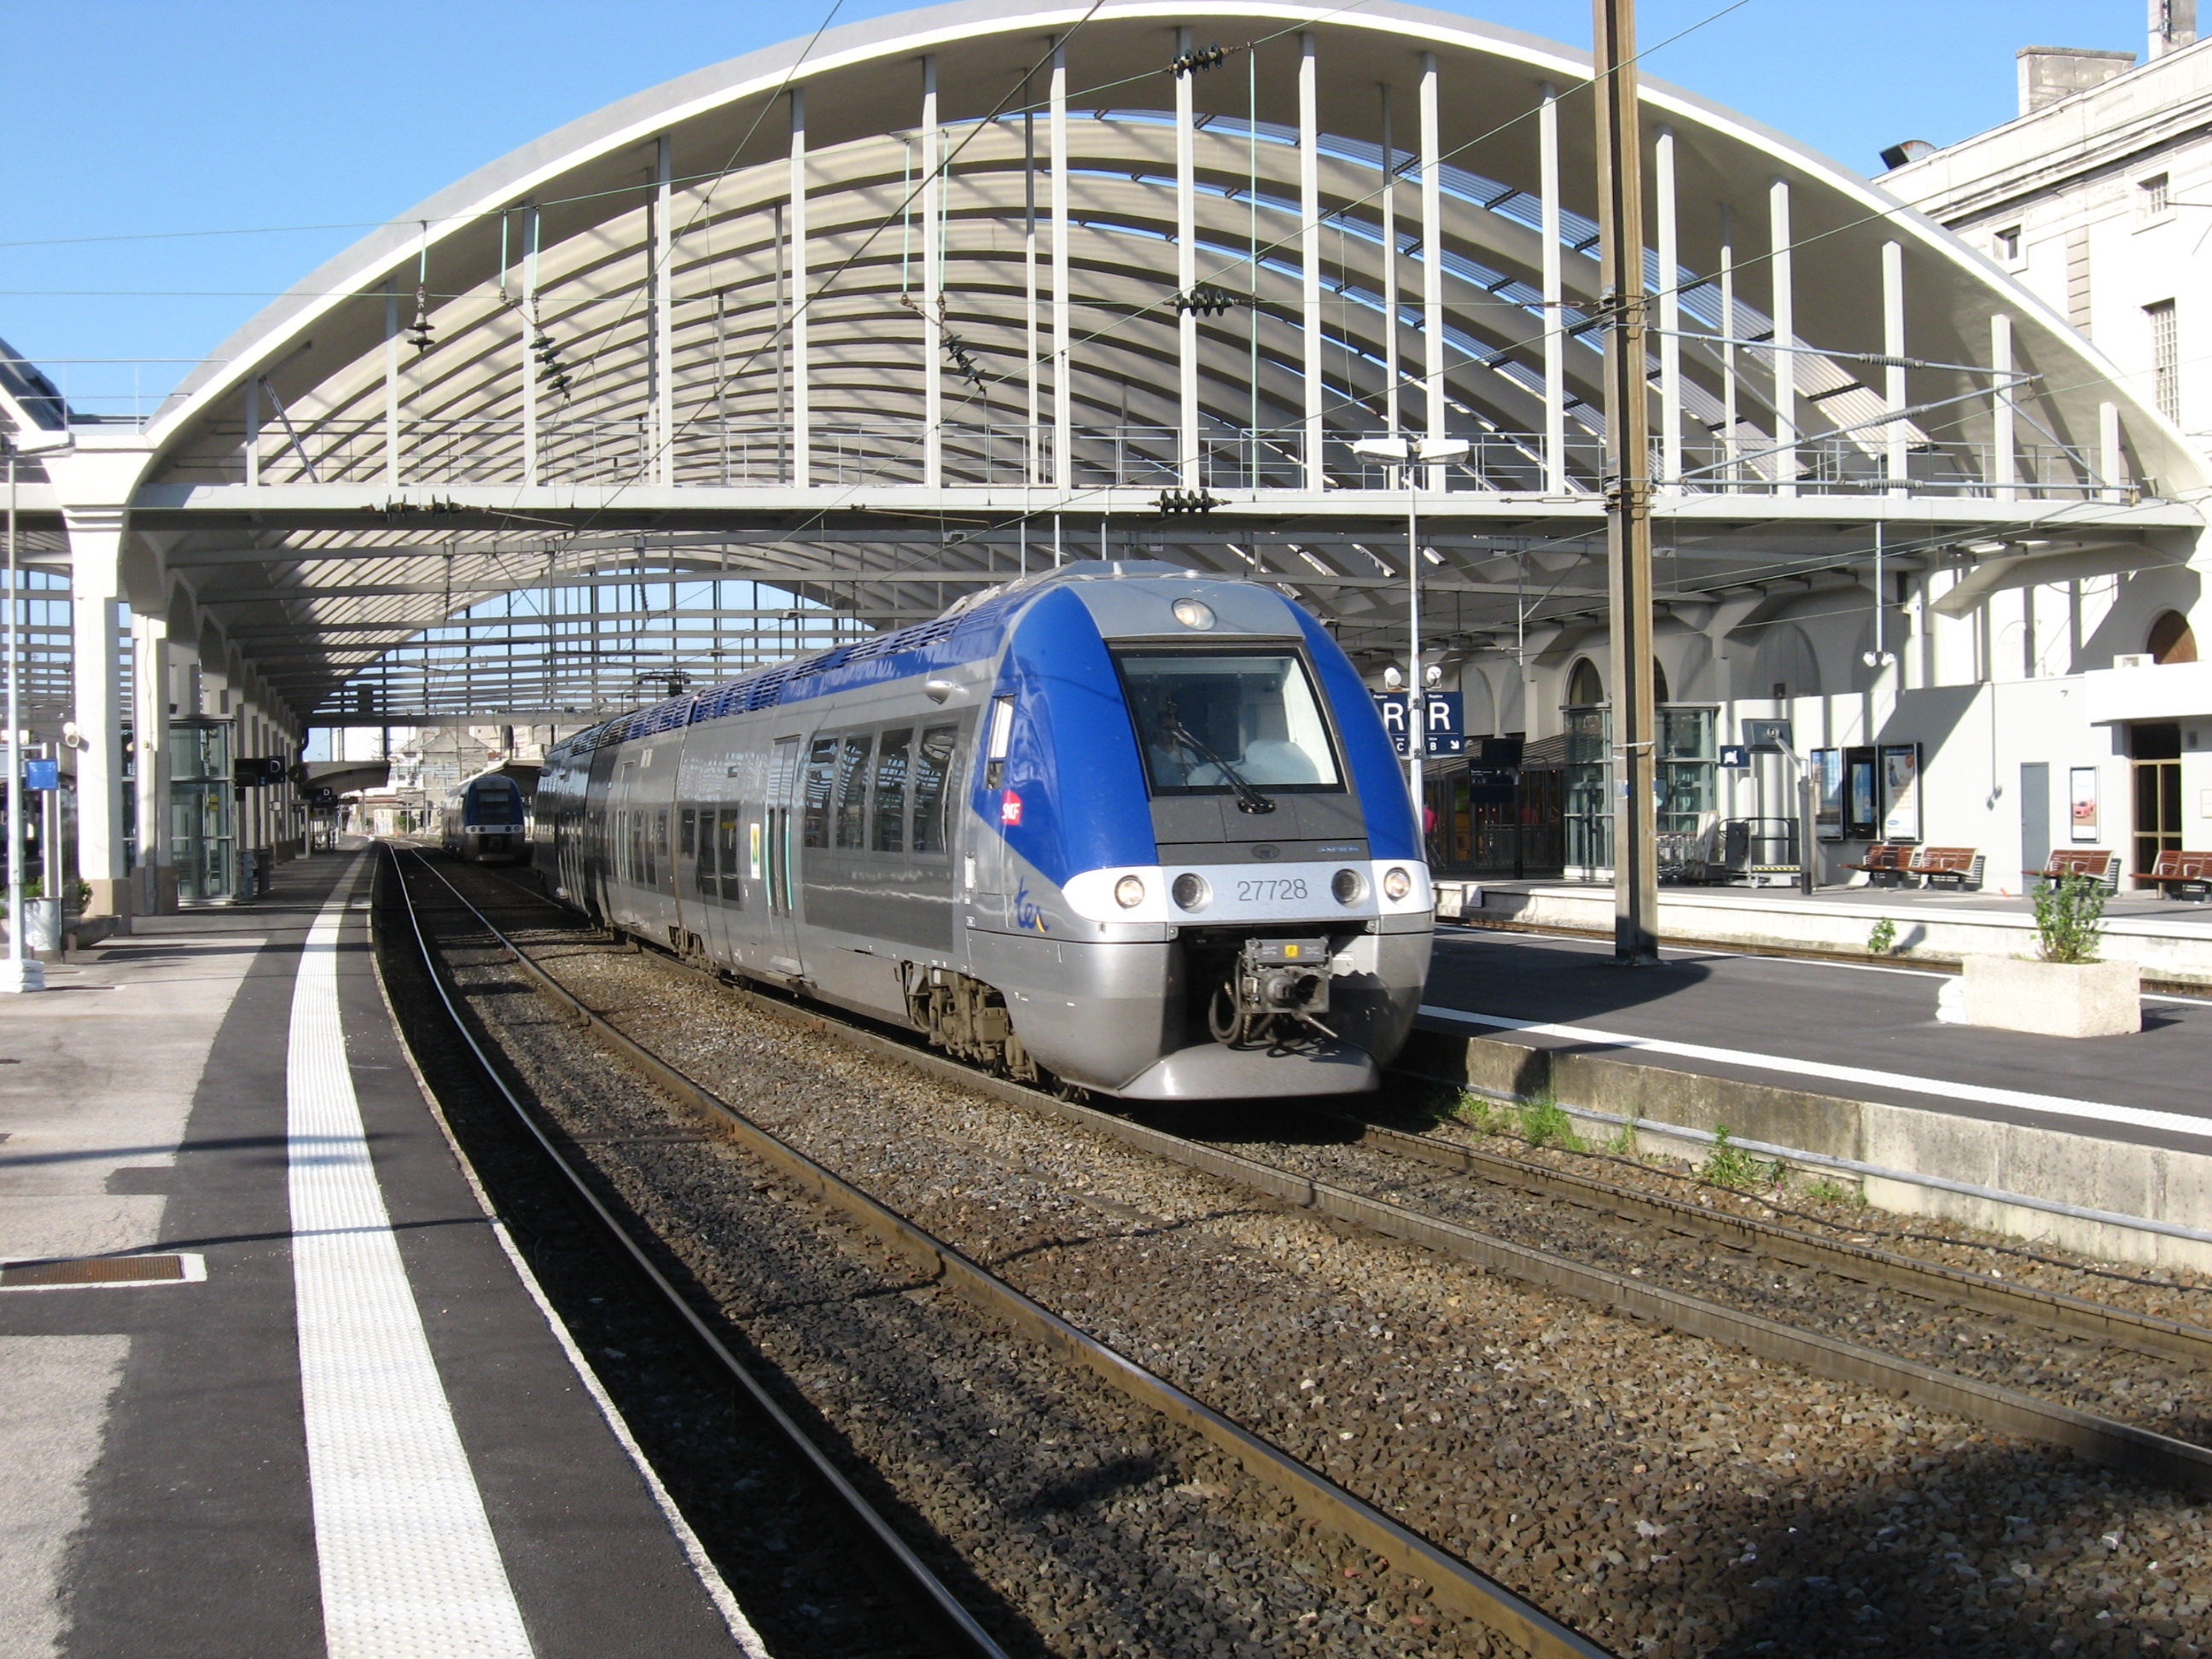 File:Station Reims TER.JPG - Wikimedia Commons